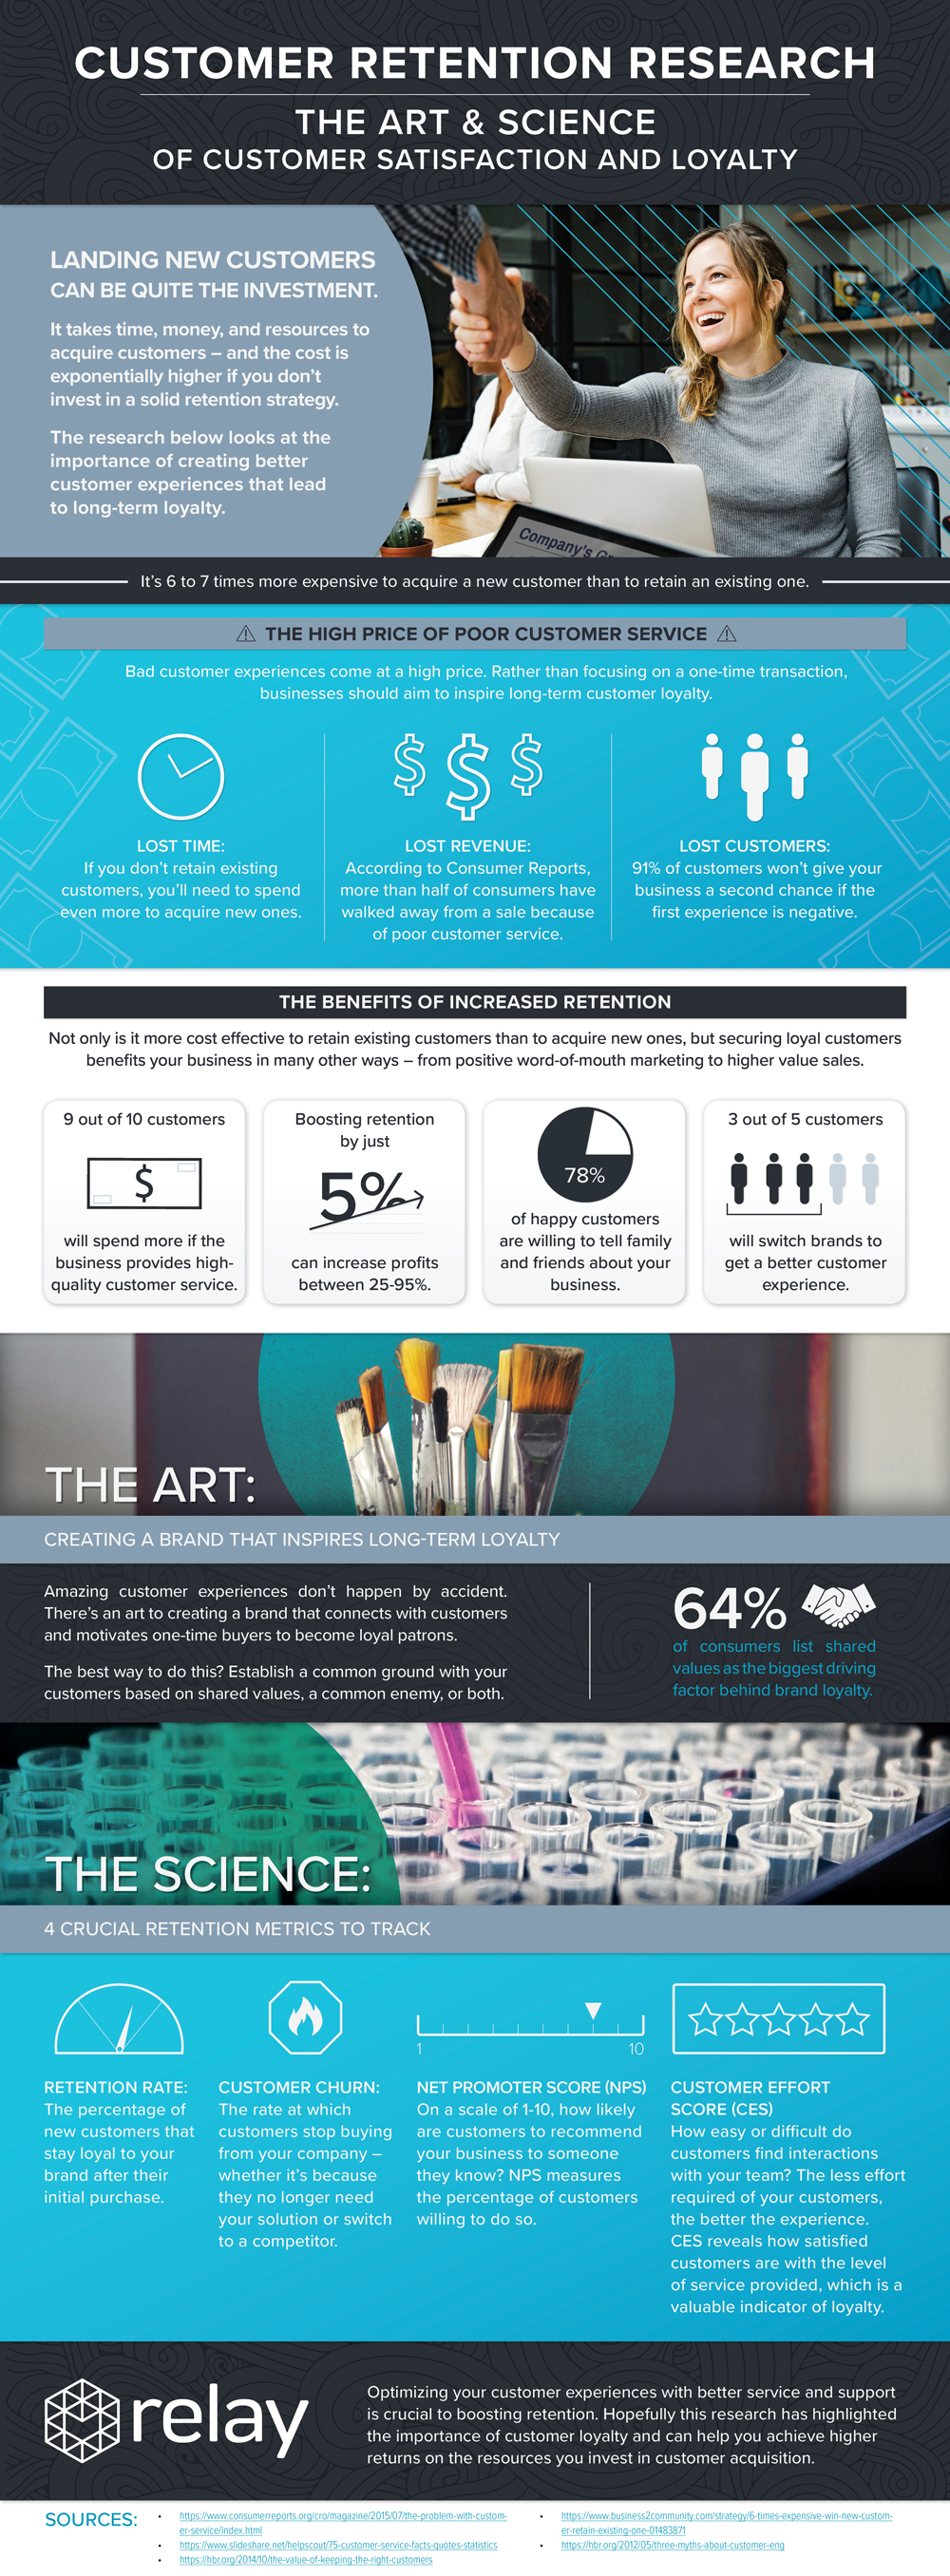 Customer Retention Research: The Art and Science of Customer Satisfaction & Loyalty [Infographic]